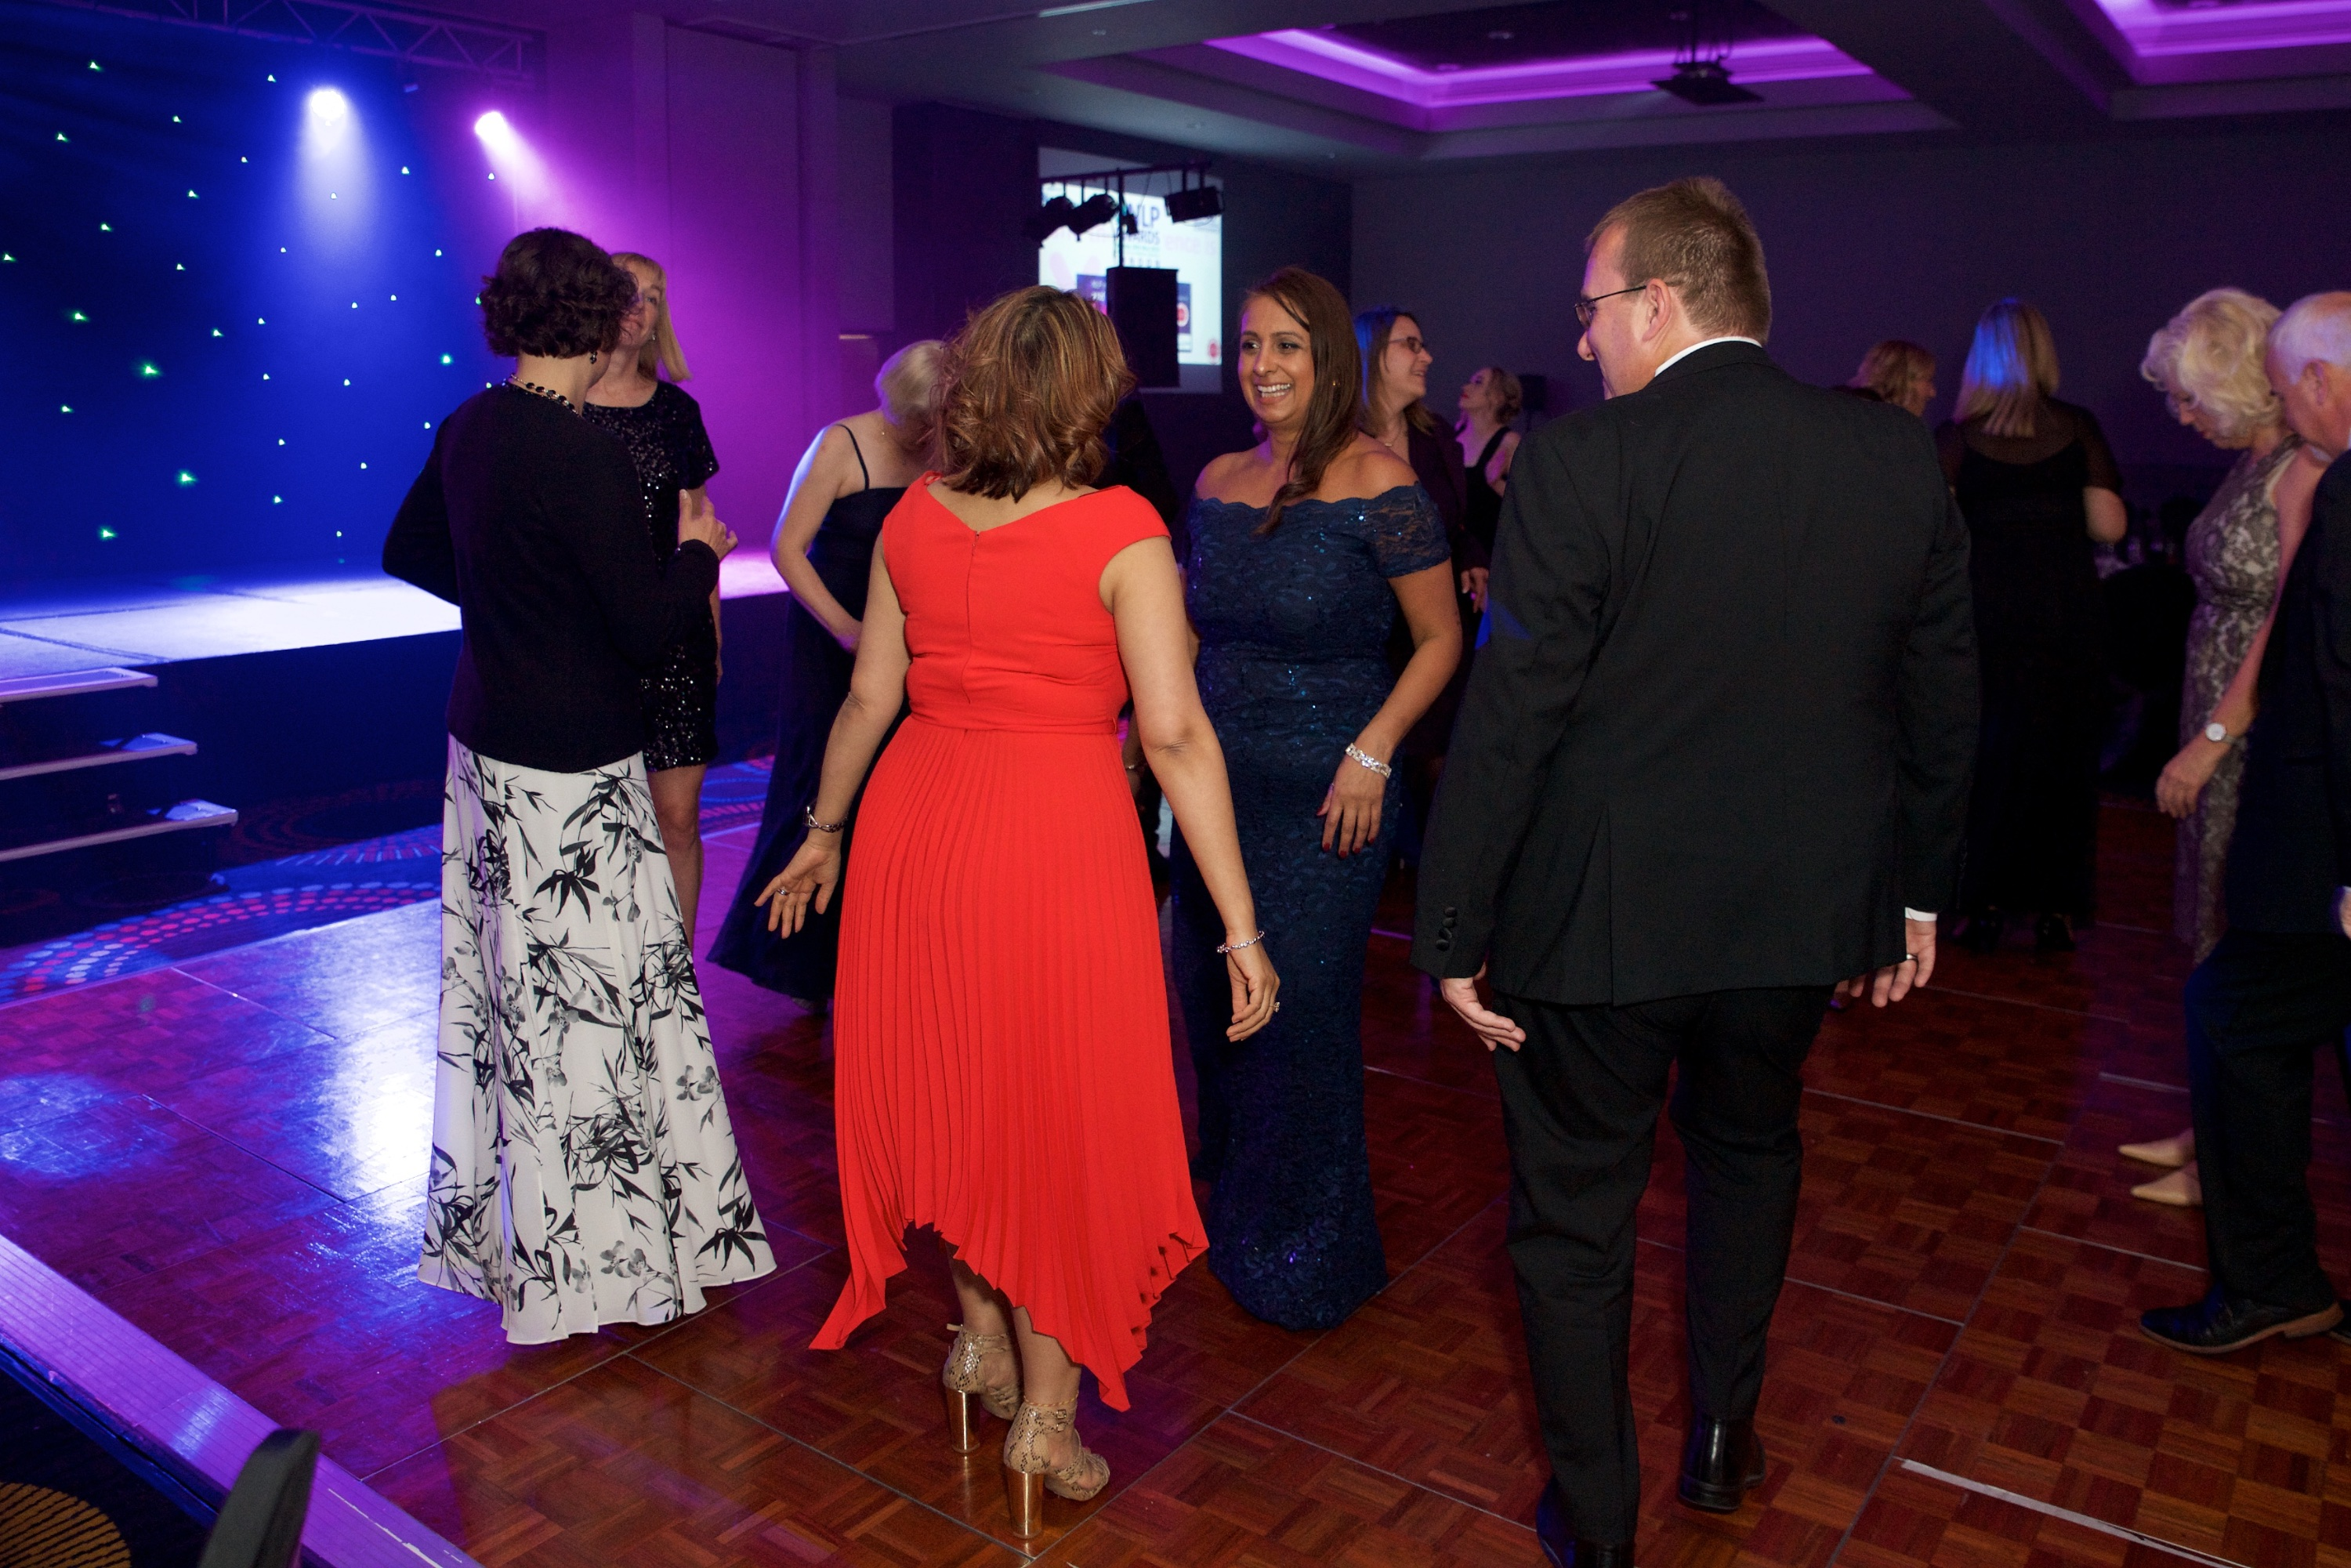 Dancing at 2019 NLP Awards Event